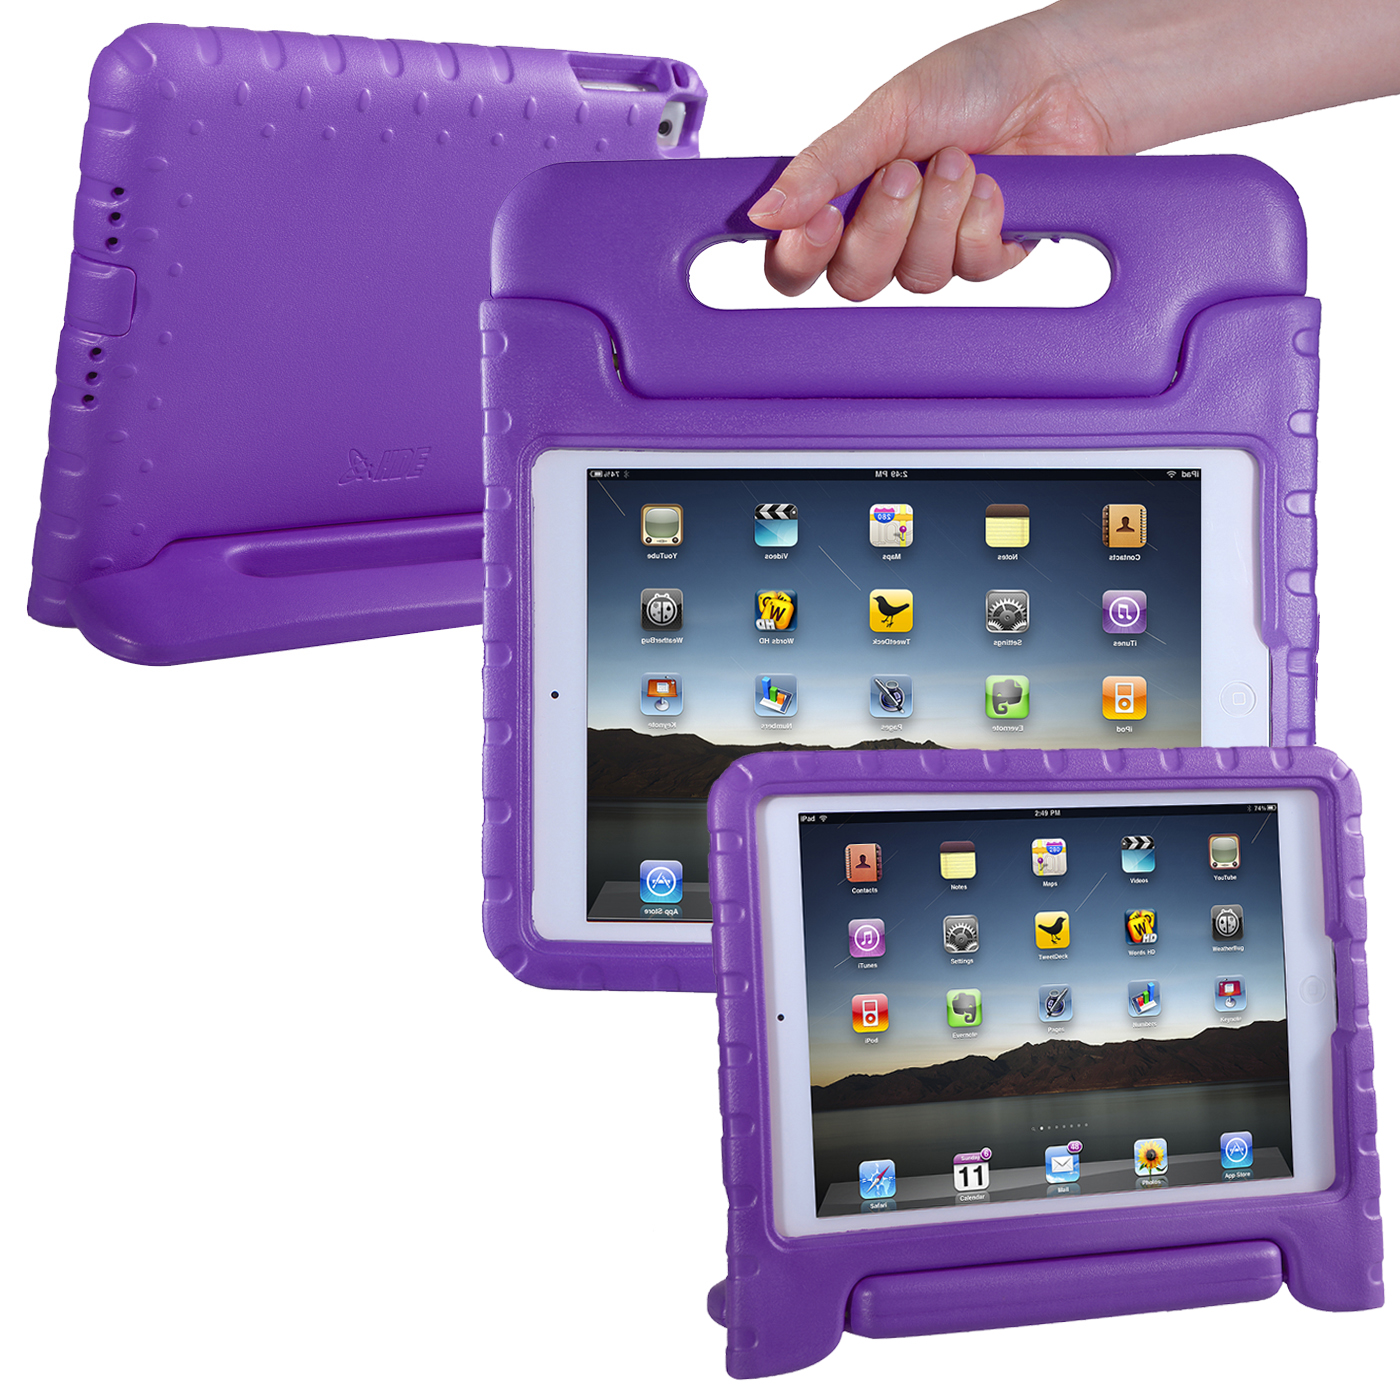 HDE 2017 iPad Case for Kids with Handle Stand Lightweight Shock Proof Cover for Apple iPad (7th Generation iPad, March 2017 Release, Purple)